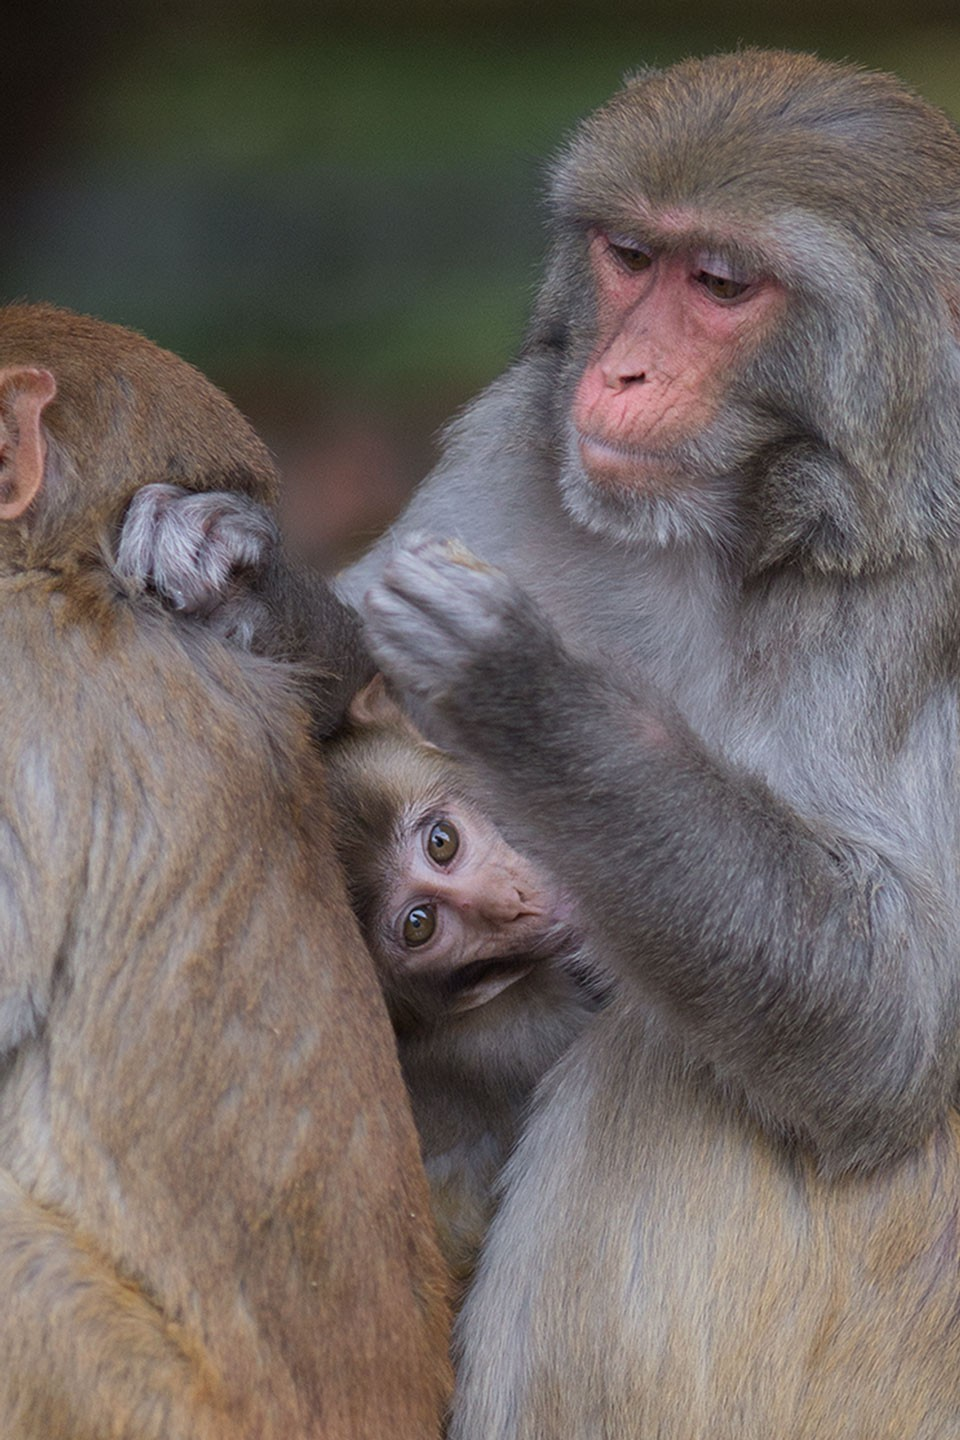 Rhesus Monkey With Baby Grooming Another Monkey Come See